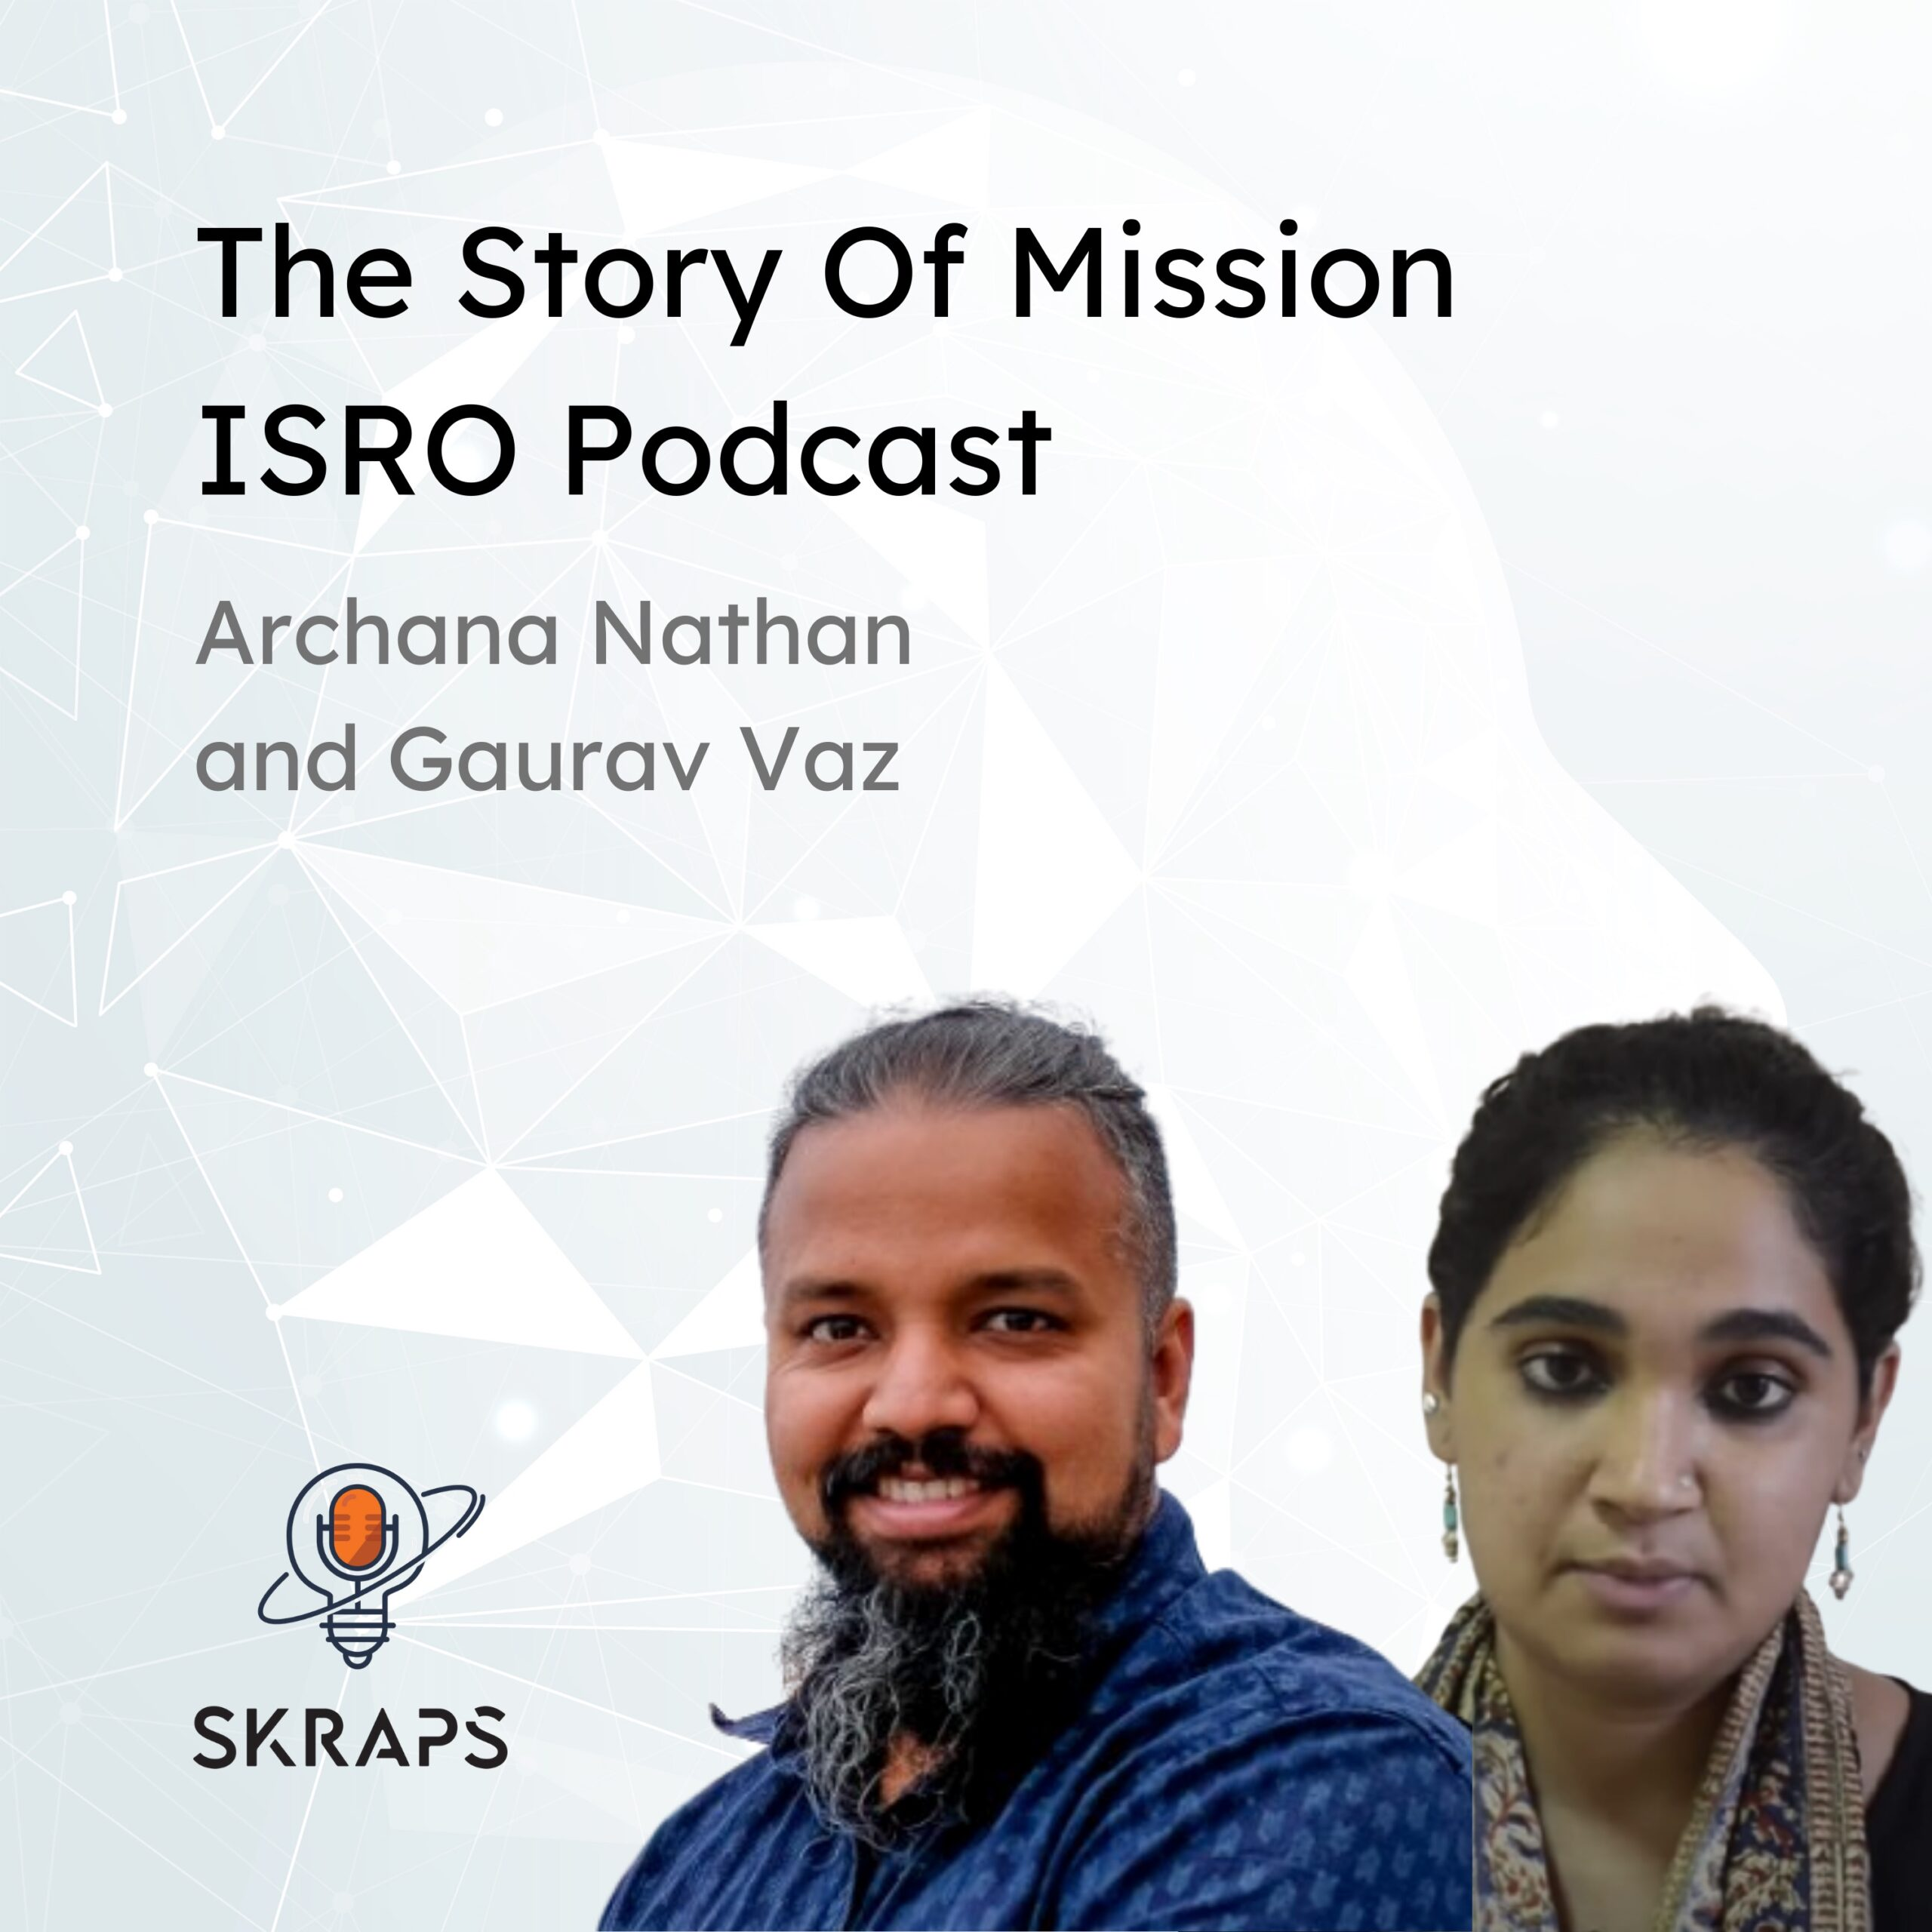 The story of Mission ISRO podcast